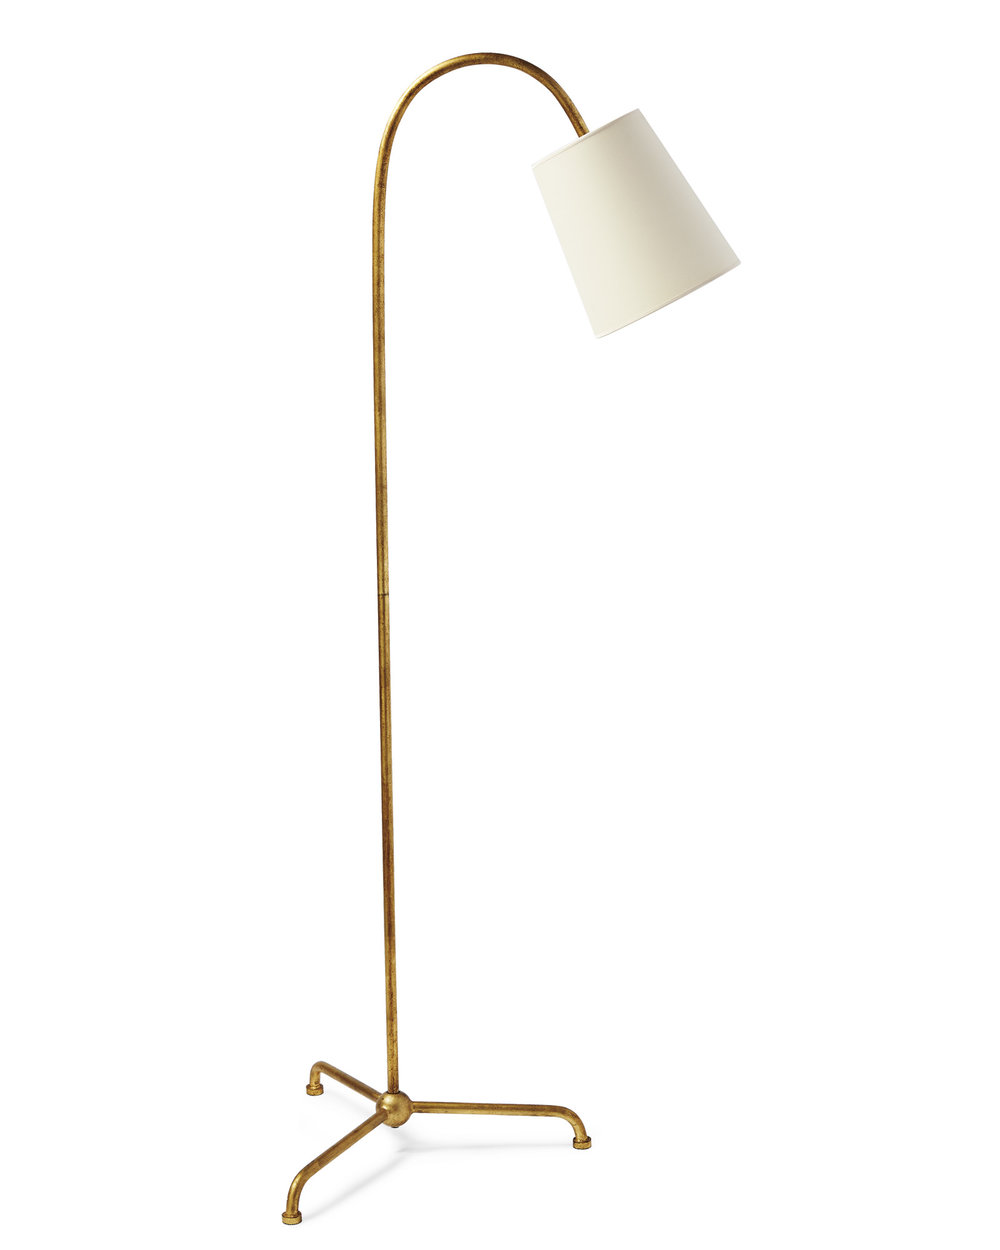 Lighting_Delancey_Floor_Lamp_Antique_Brass_MV_0495_Crop_SH.jpg